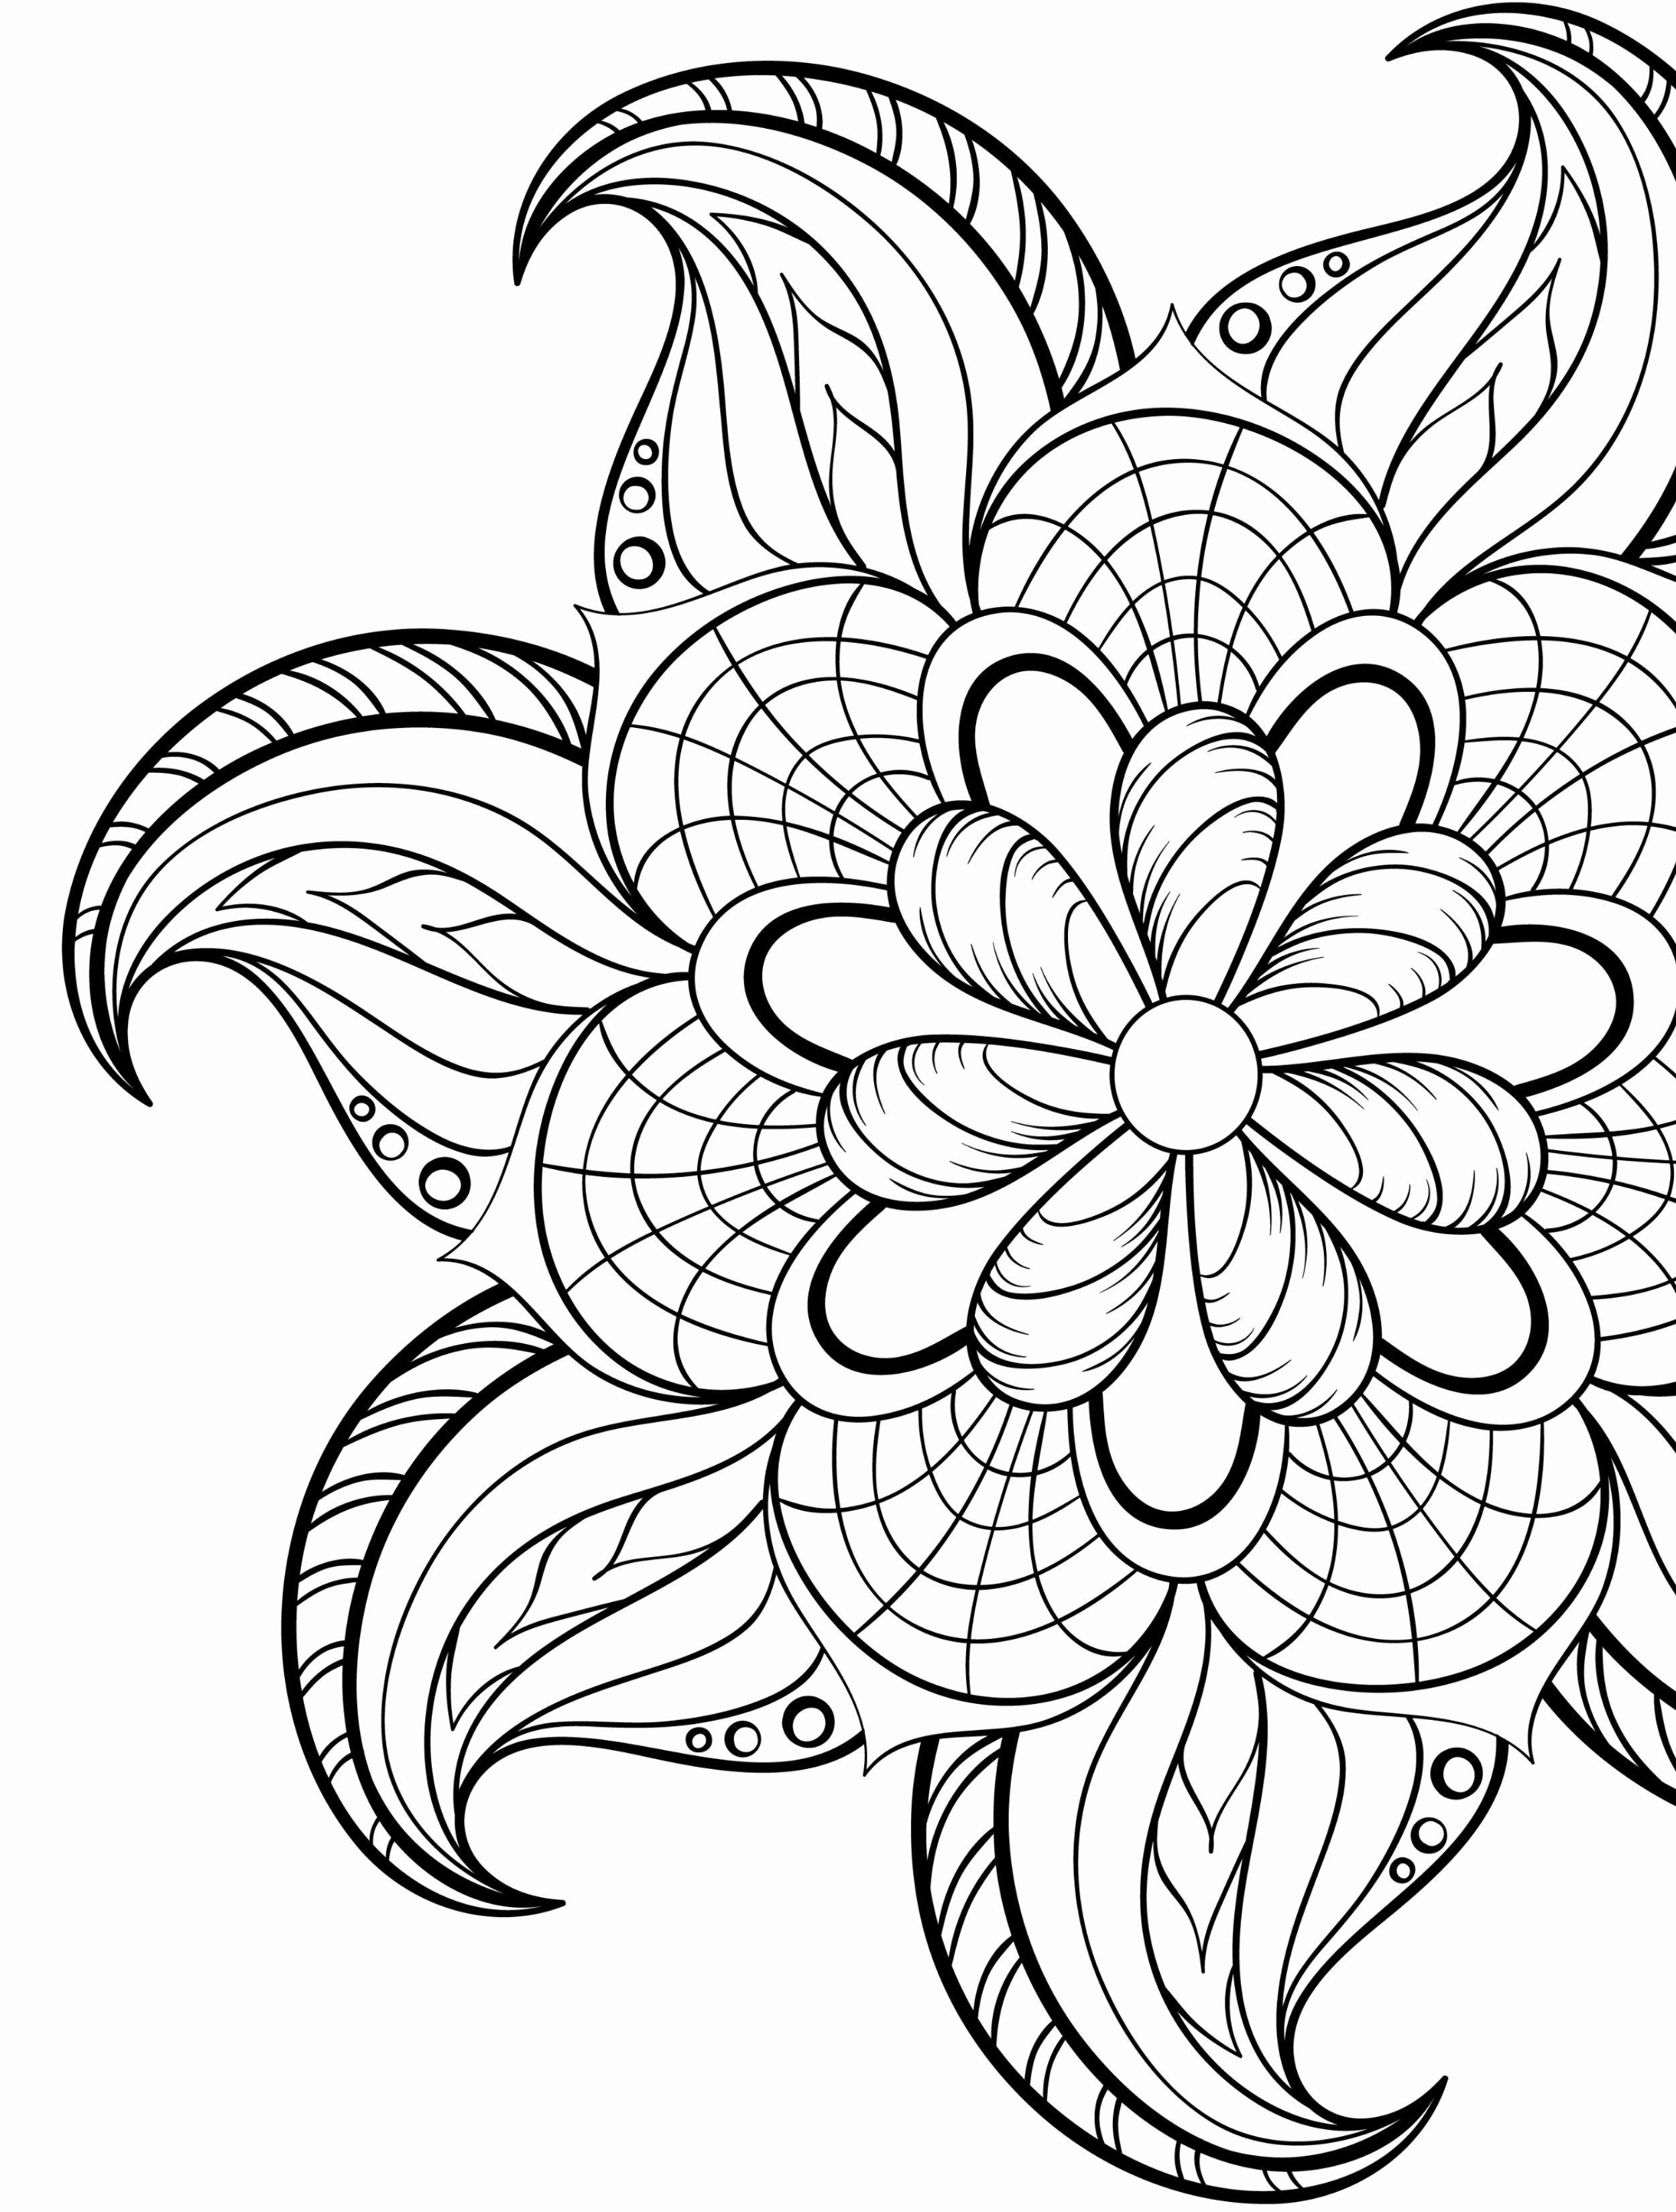 - Simple Flower Coloring Book Pdf Printable Flower Coloring Pages, Abstract  Coloring Pages, Mandala Coloring Pages